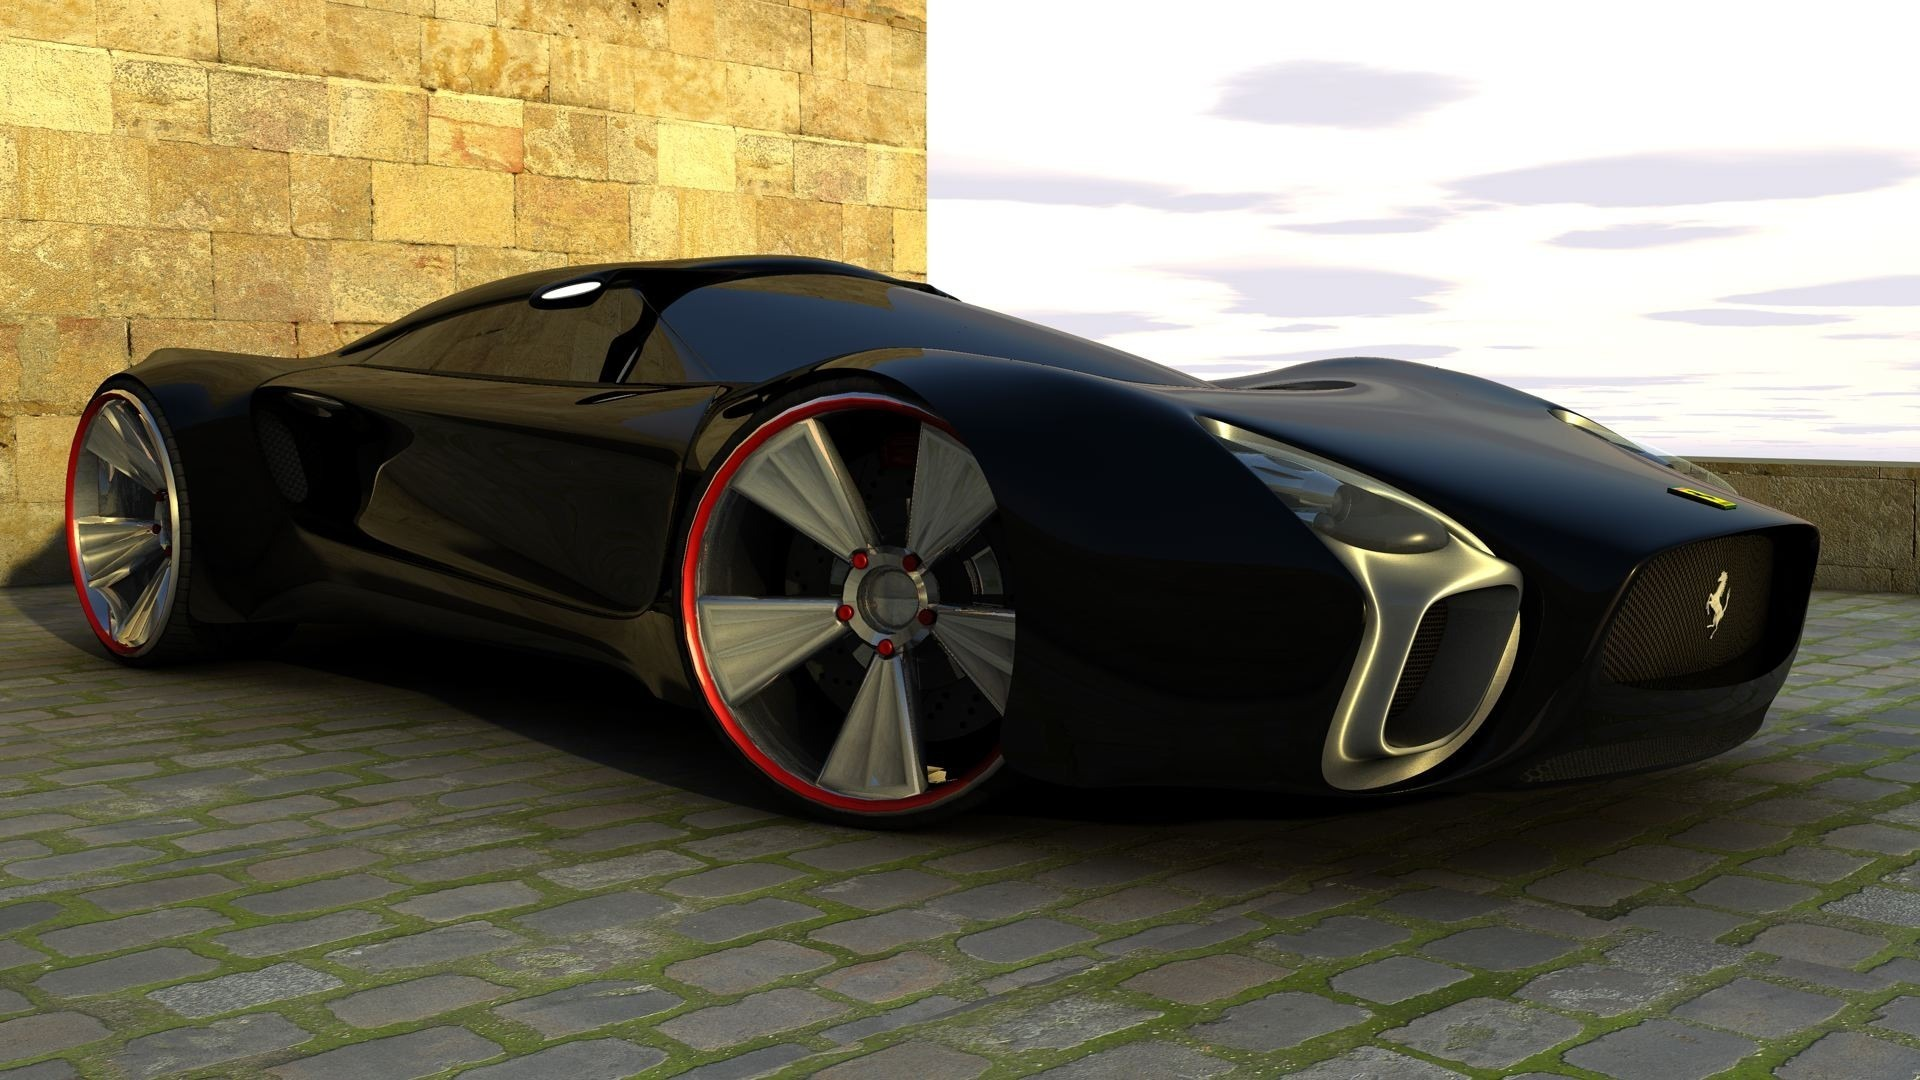 ... Concept Car Perfect For Your Wallpaper 1920x1080 | Full HD Wallpapers